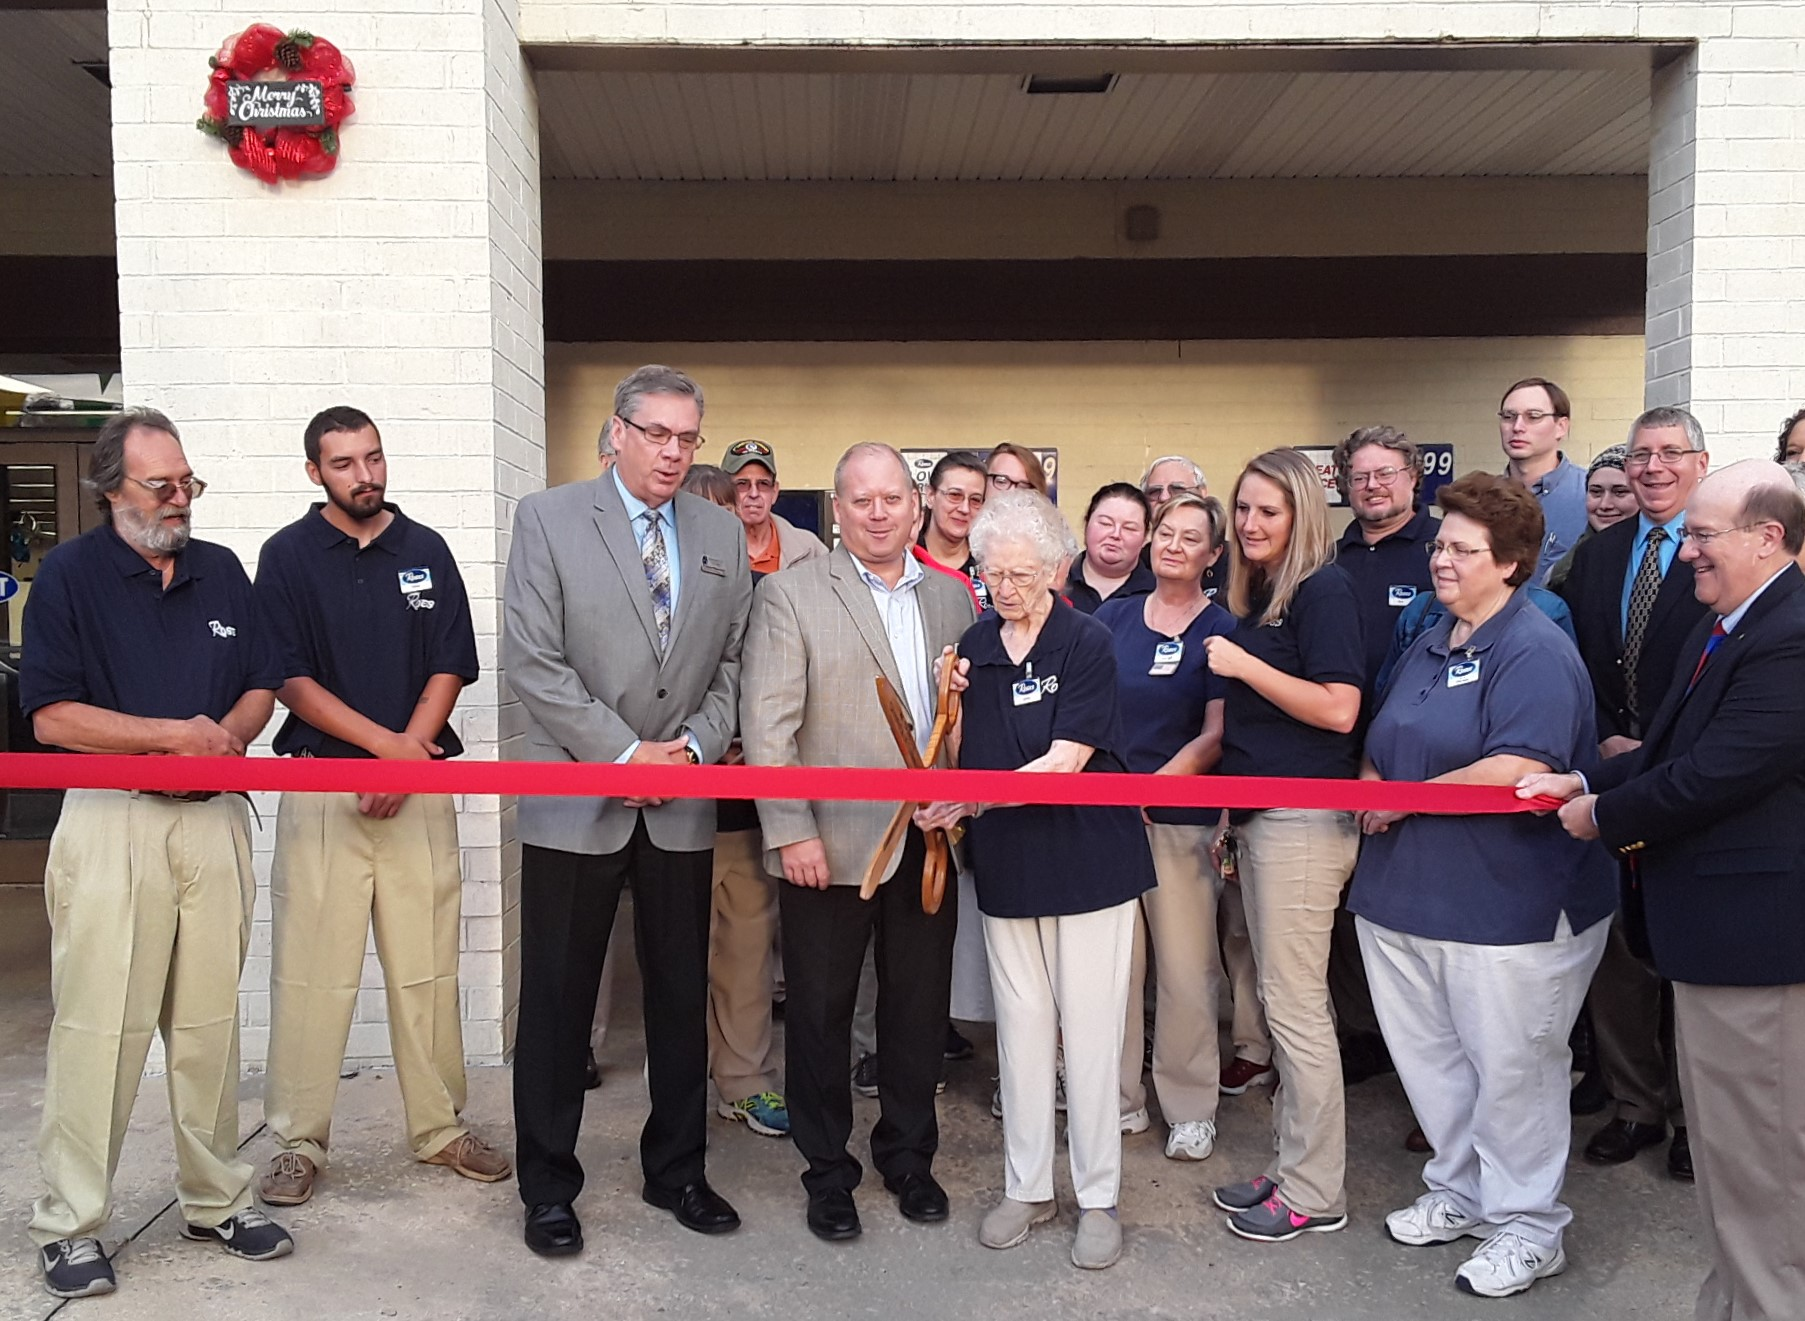 Roses of Marion, NC celebrates Grand Reopening and Ribbon Cutting